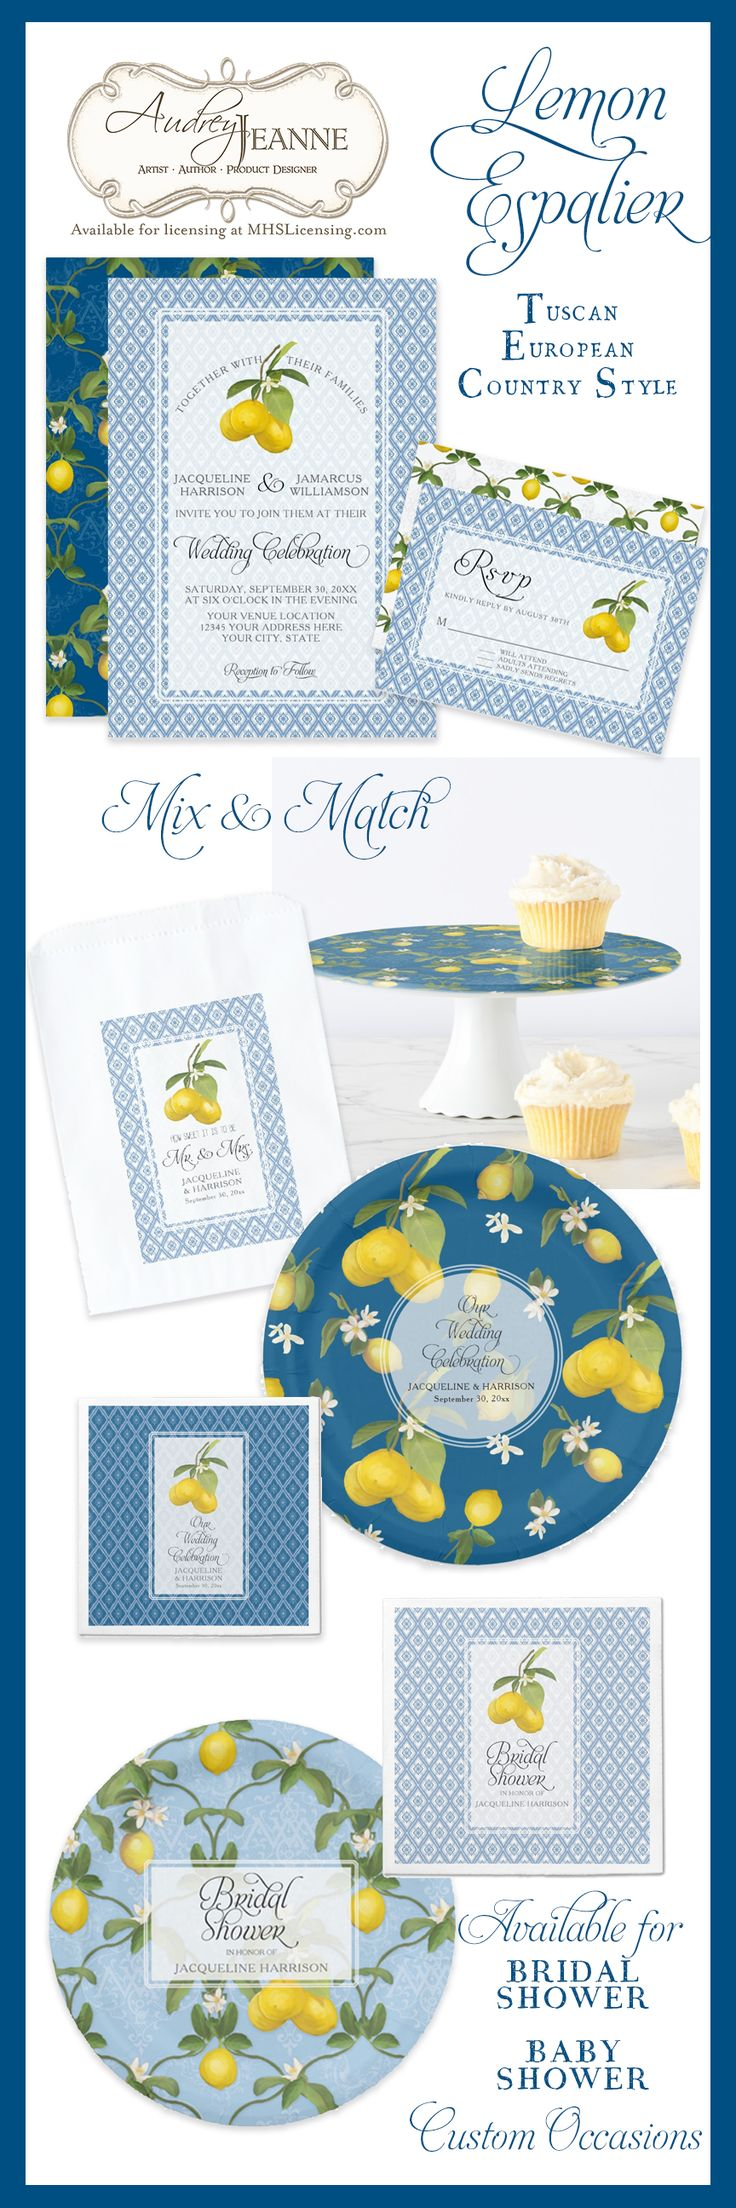 Www Partyinvitations Com with awesome invitation layout